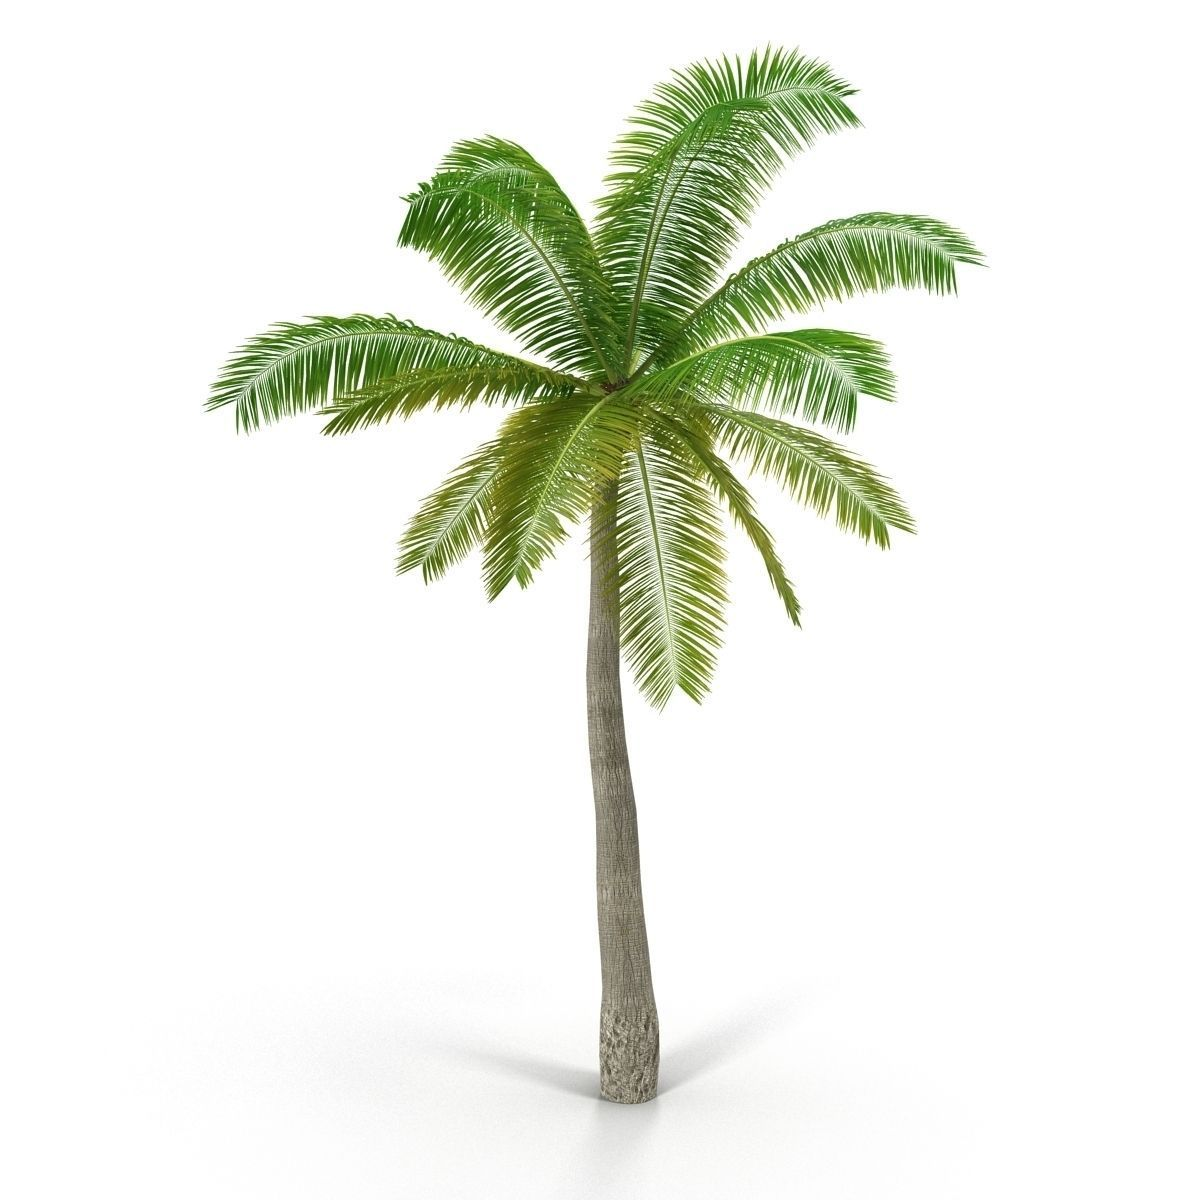 Coconut palm 3D Model .max - CGTrader.com